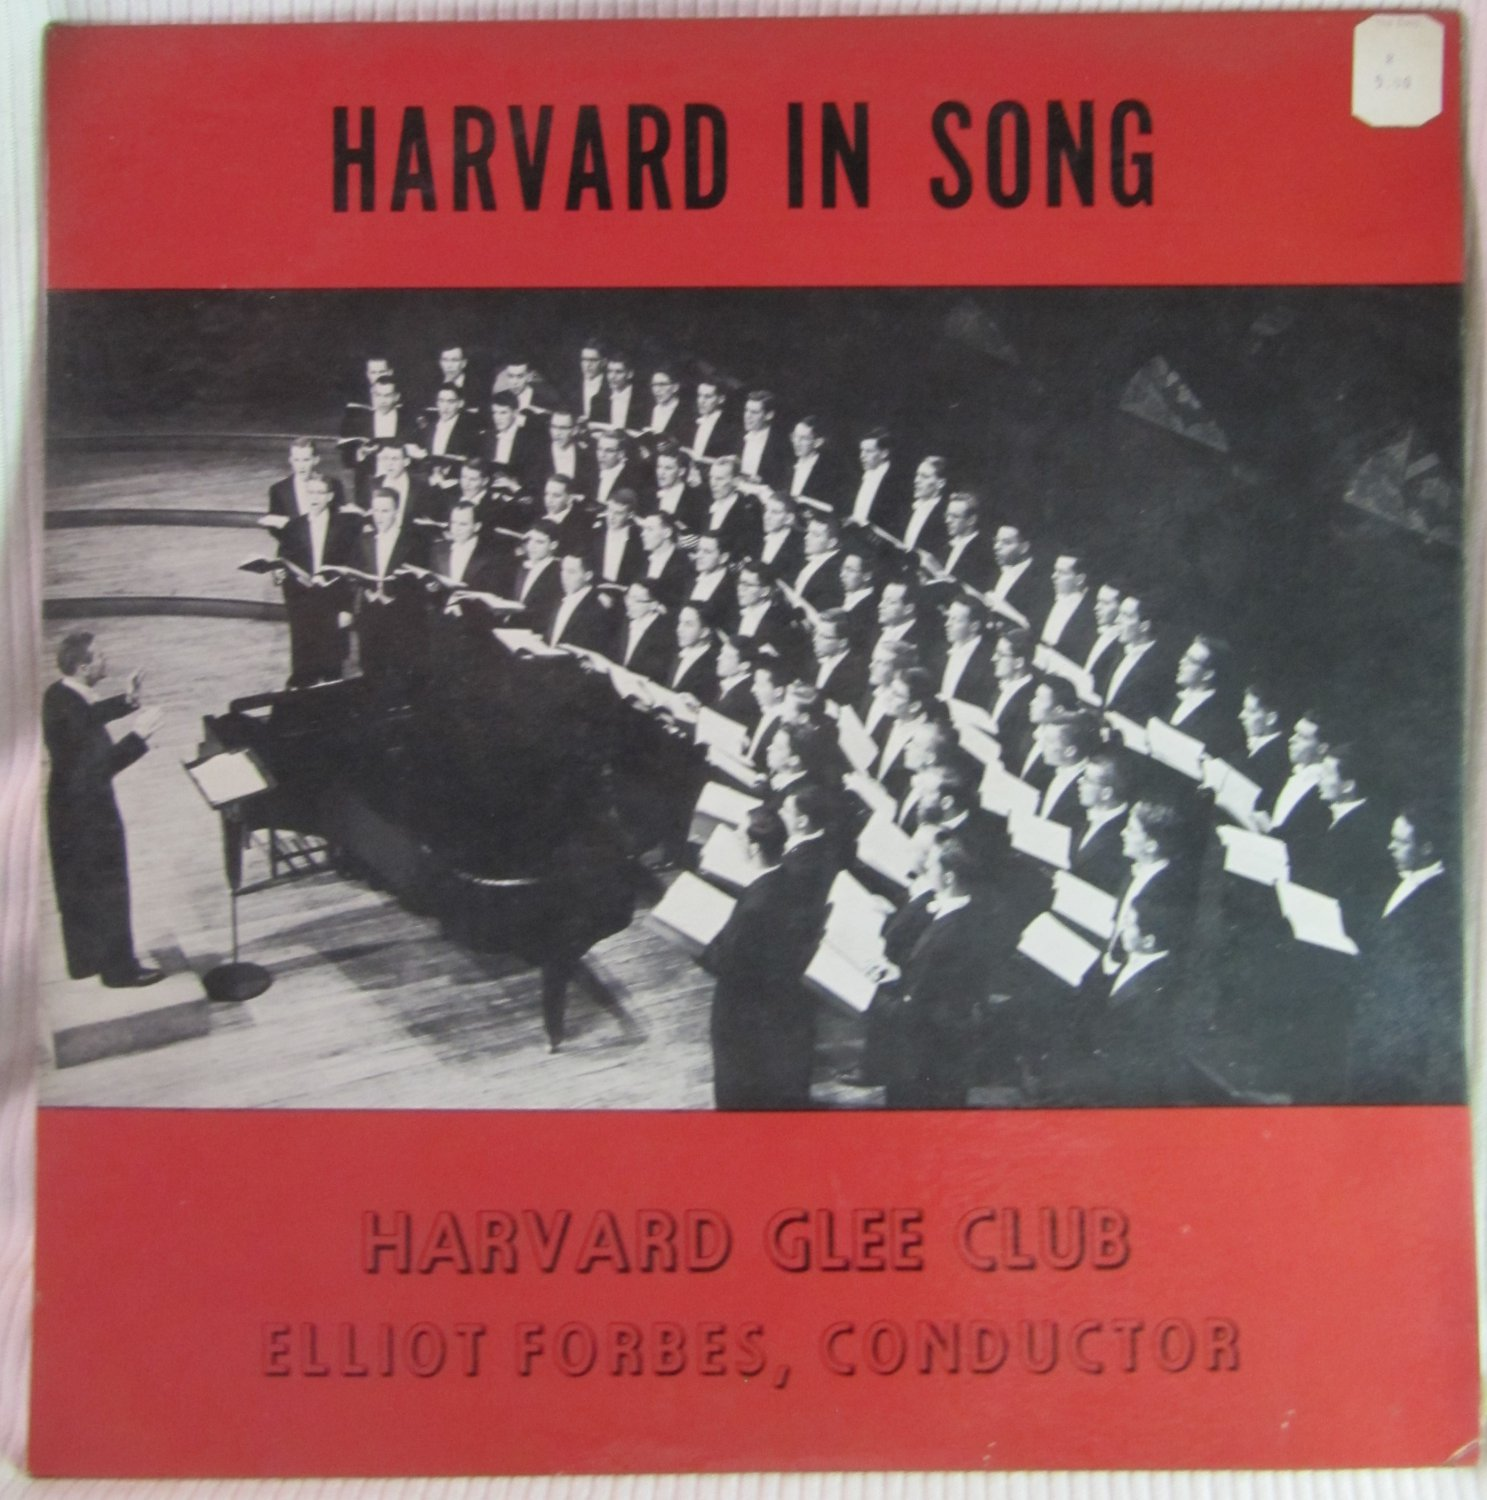 Harvard Glee Club Harvard in Song Elliot Forbes F-HGC-1 Original 1960 LP Vinyl Record Album